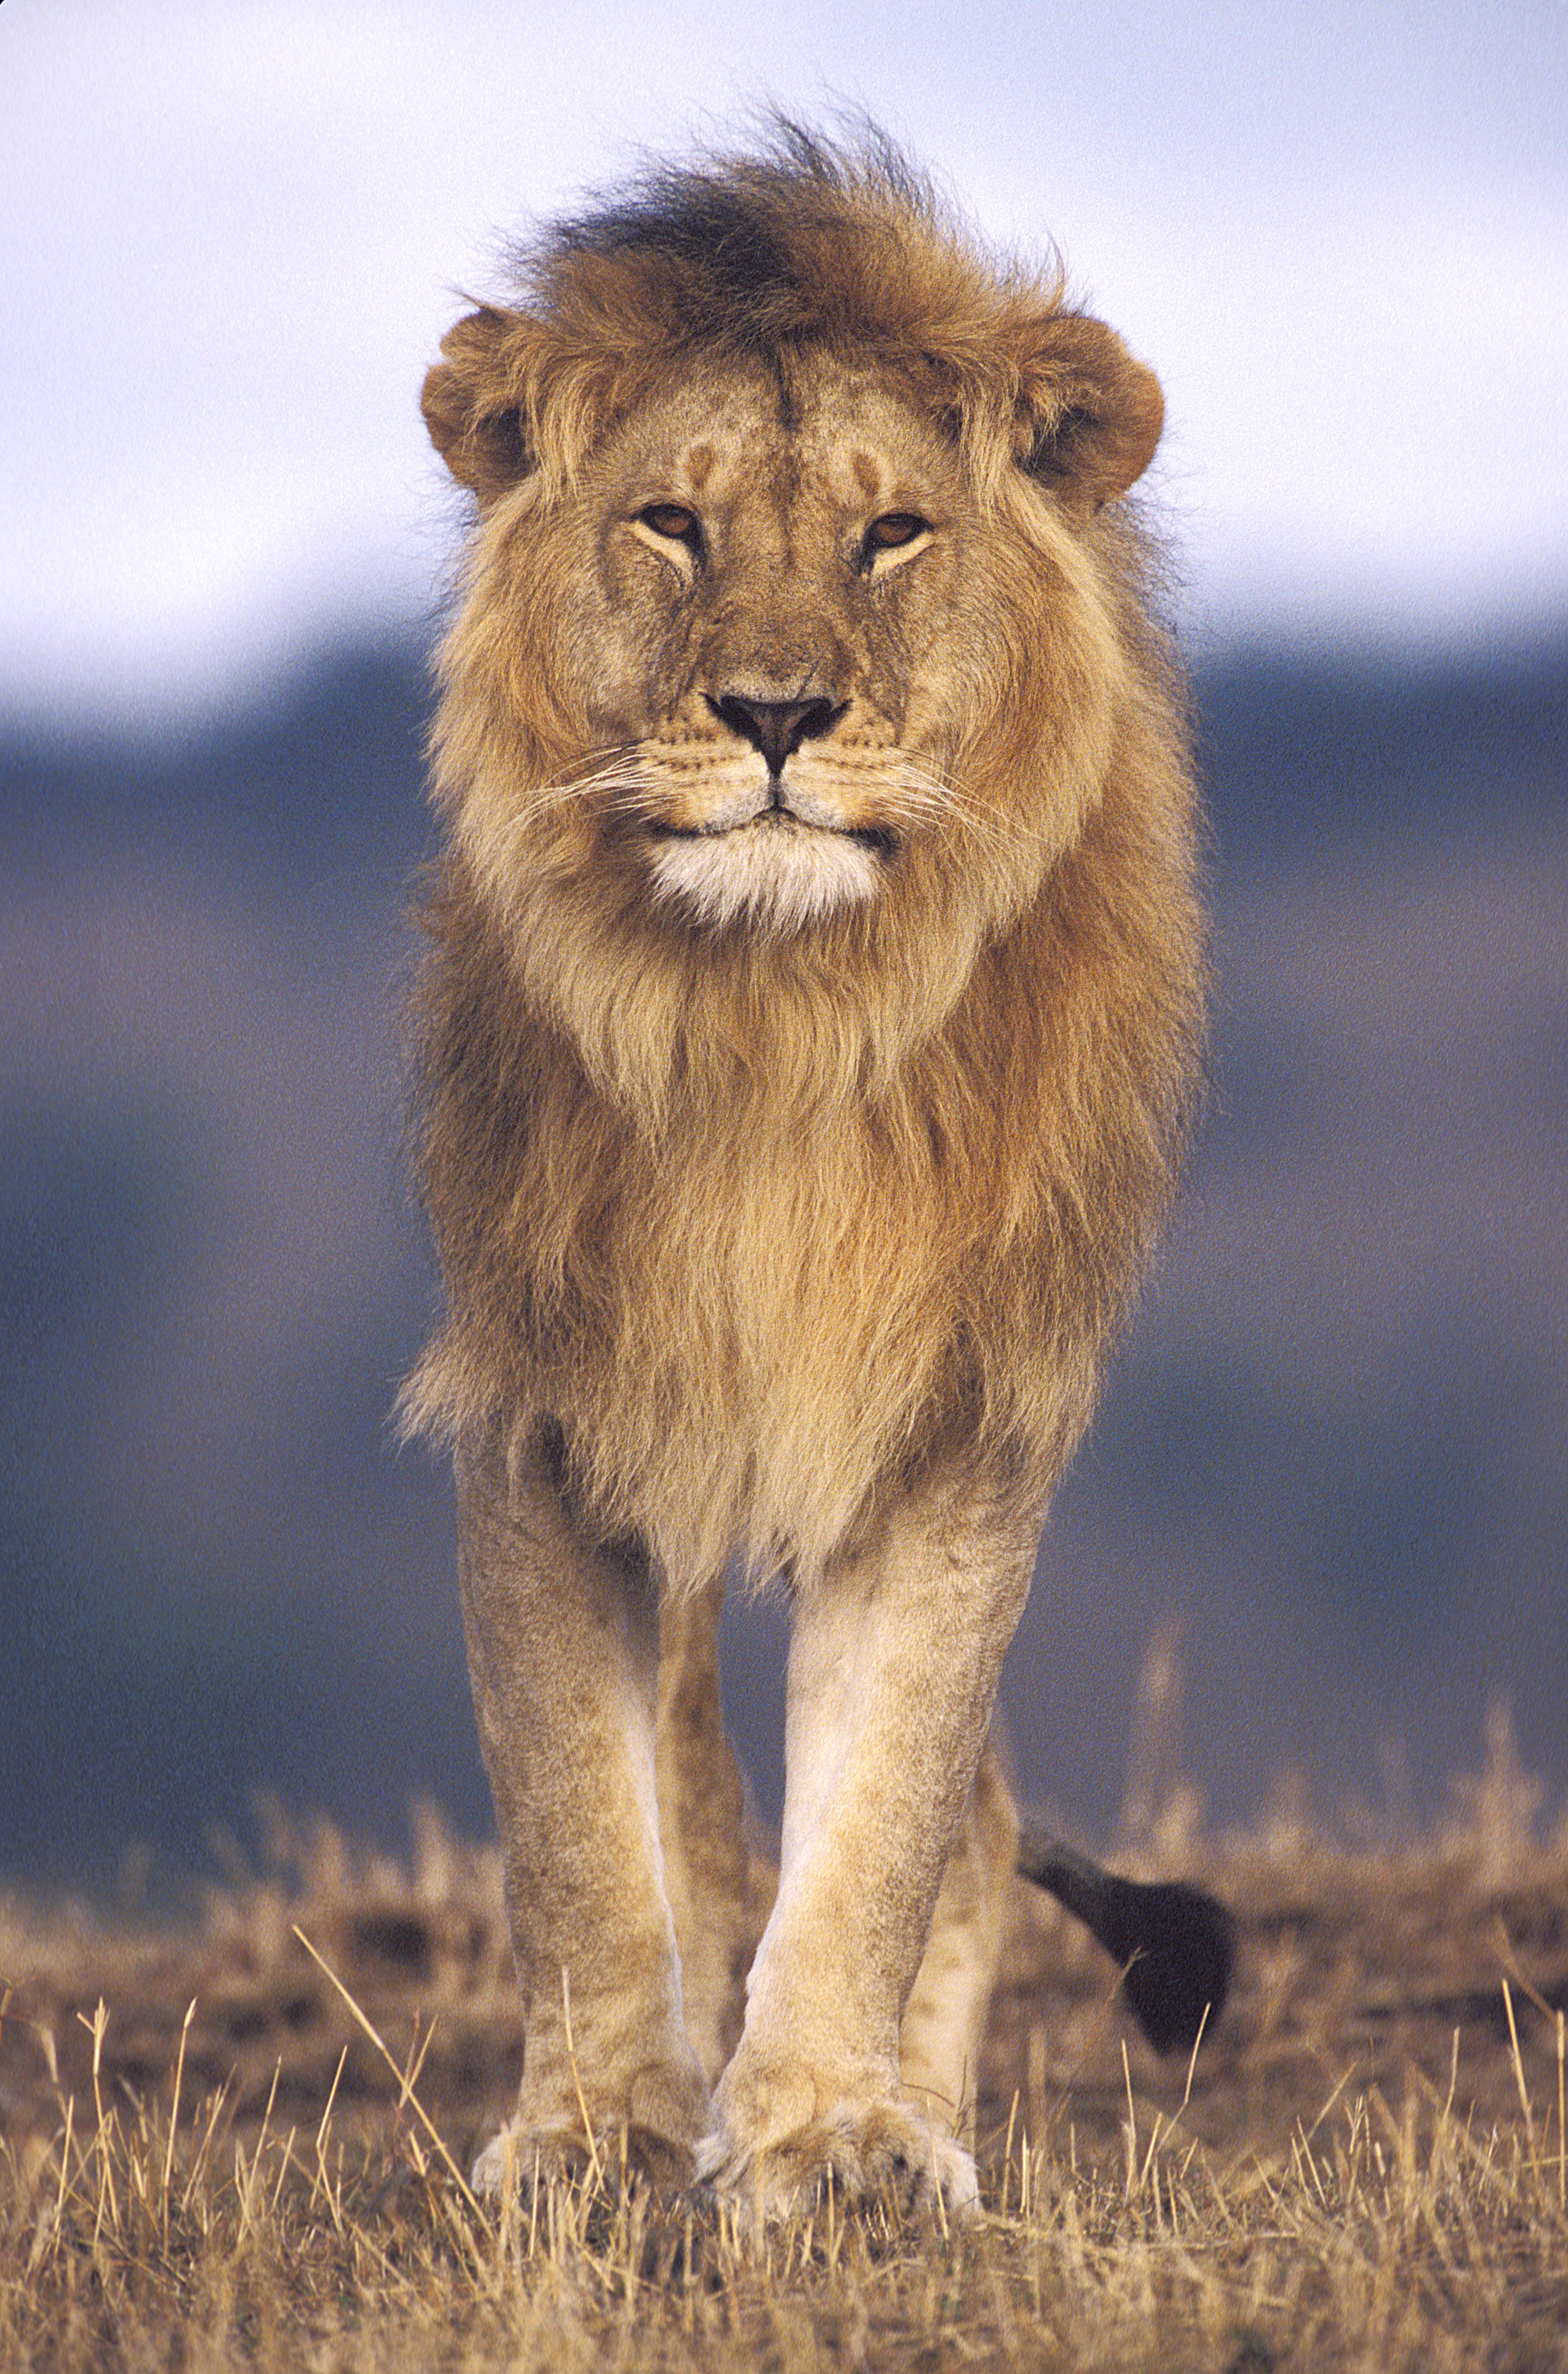 Close-up of a lion walking in a field (Panthera leo)